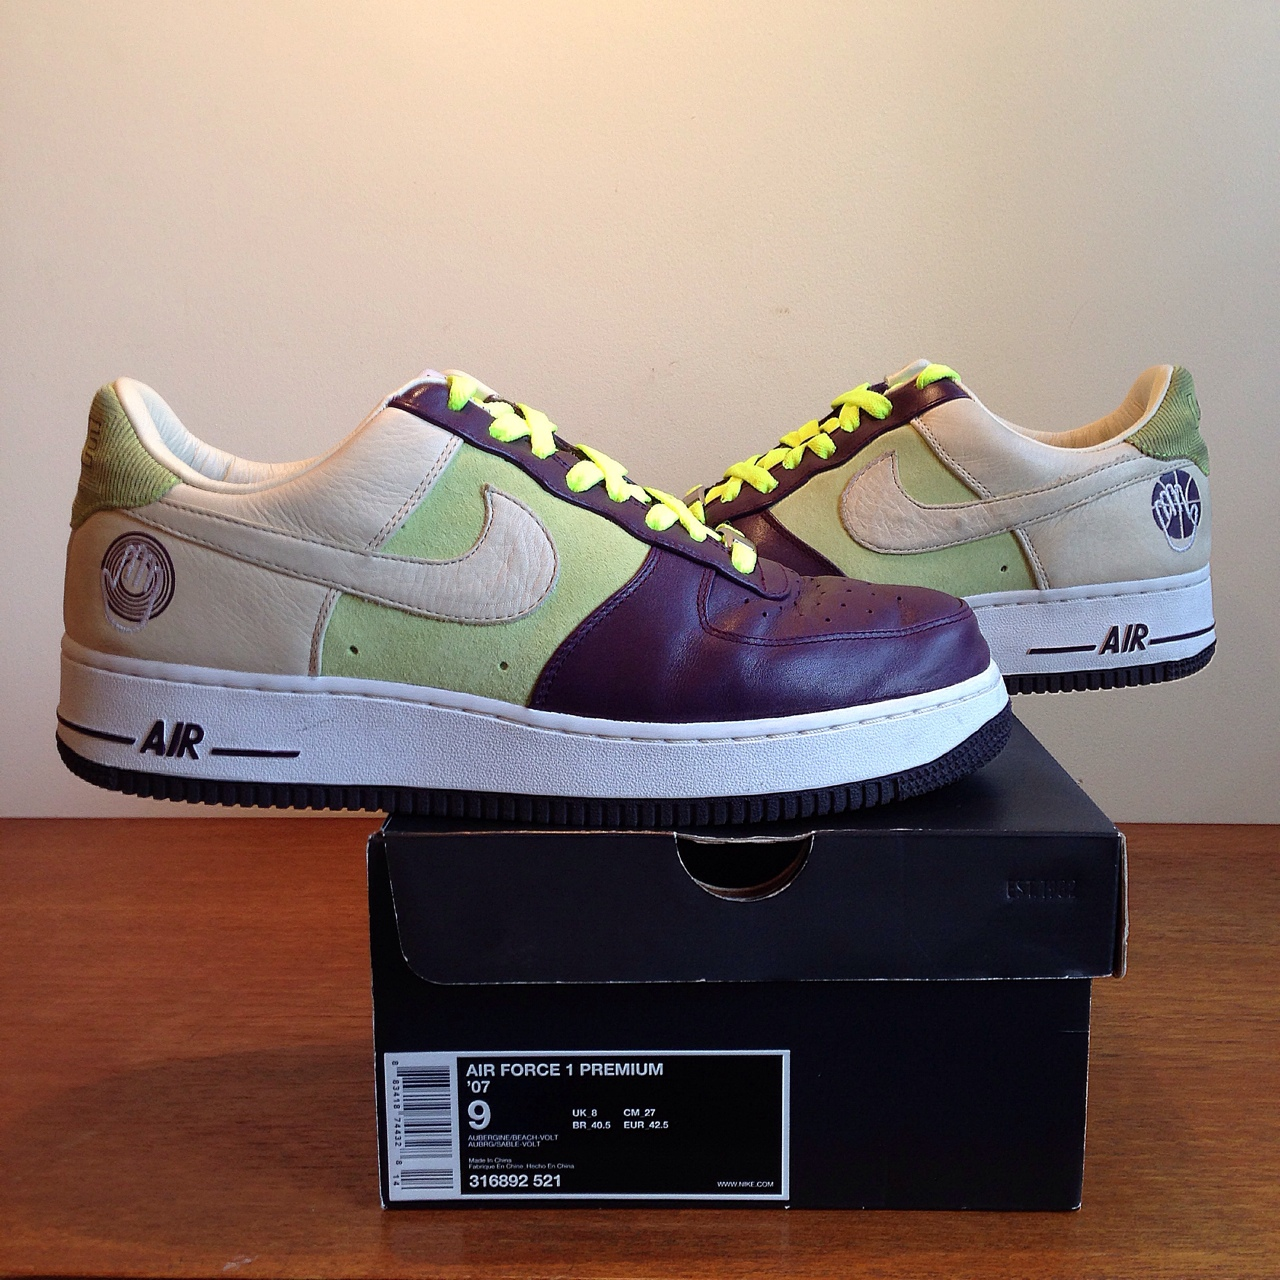 Nike Air Force one premium Bobito released 2007, Depop